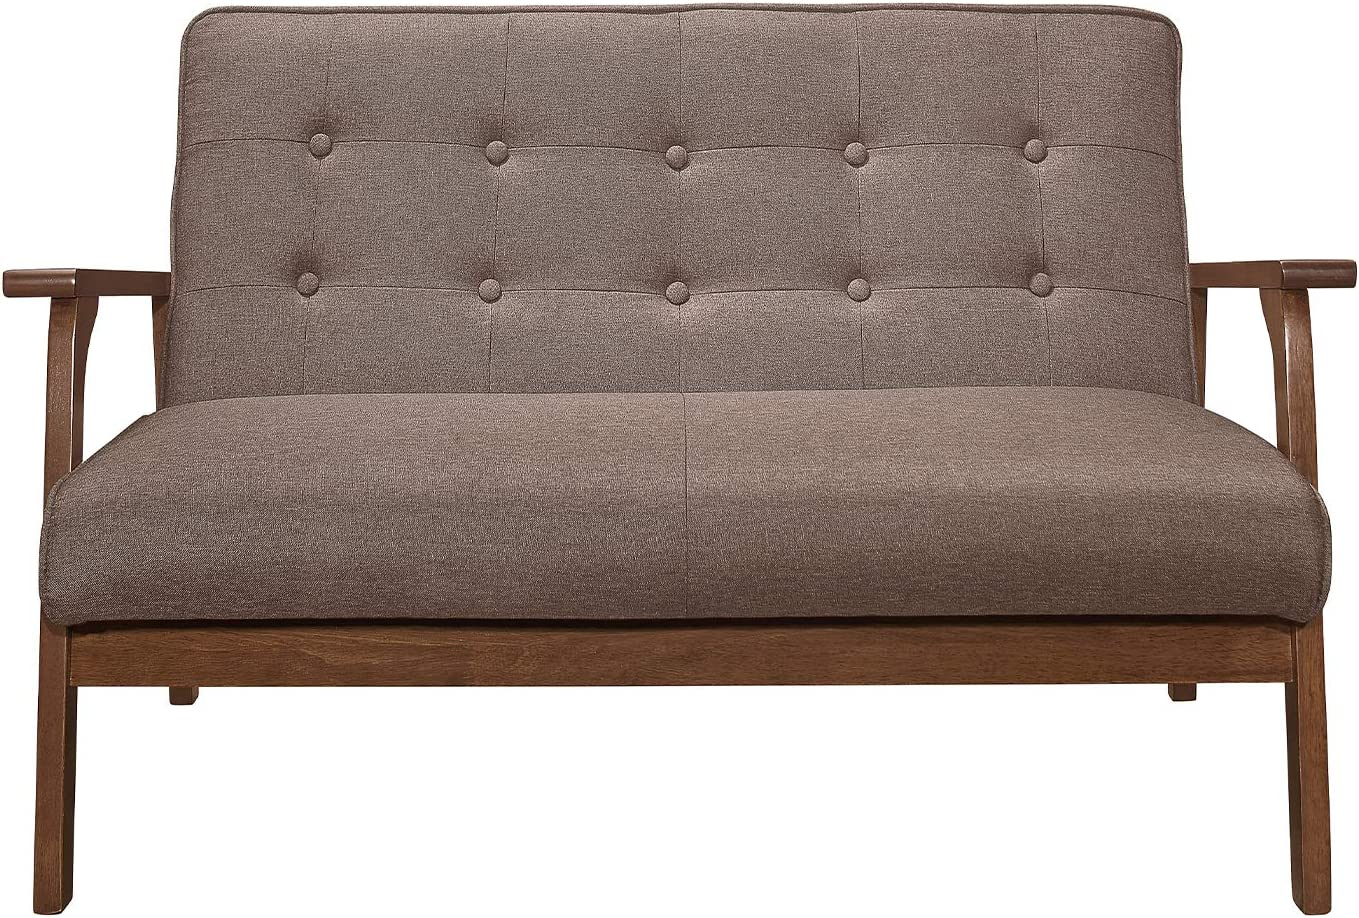 BoloShine Modern Solid Loveseat Sofa, Durable Wooden Sofa Upholstered Fabric with Sturdy Legs, Comfortable Mini Couch Ideal for Liviing Room, Bedroom (Brown)